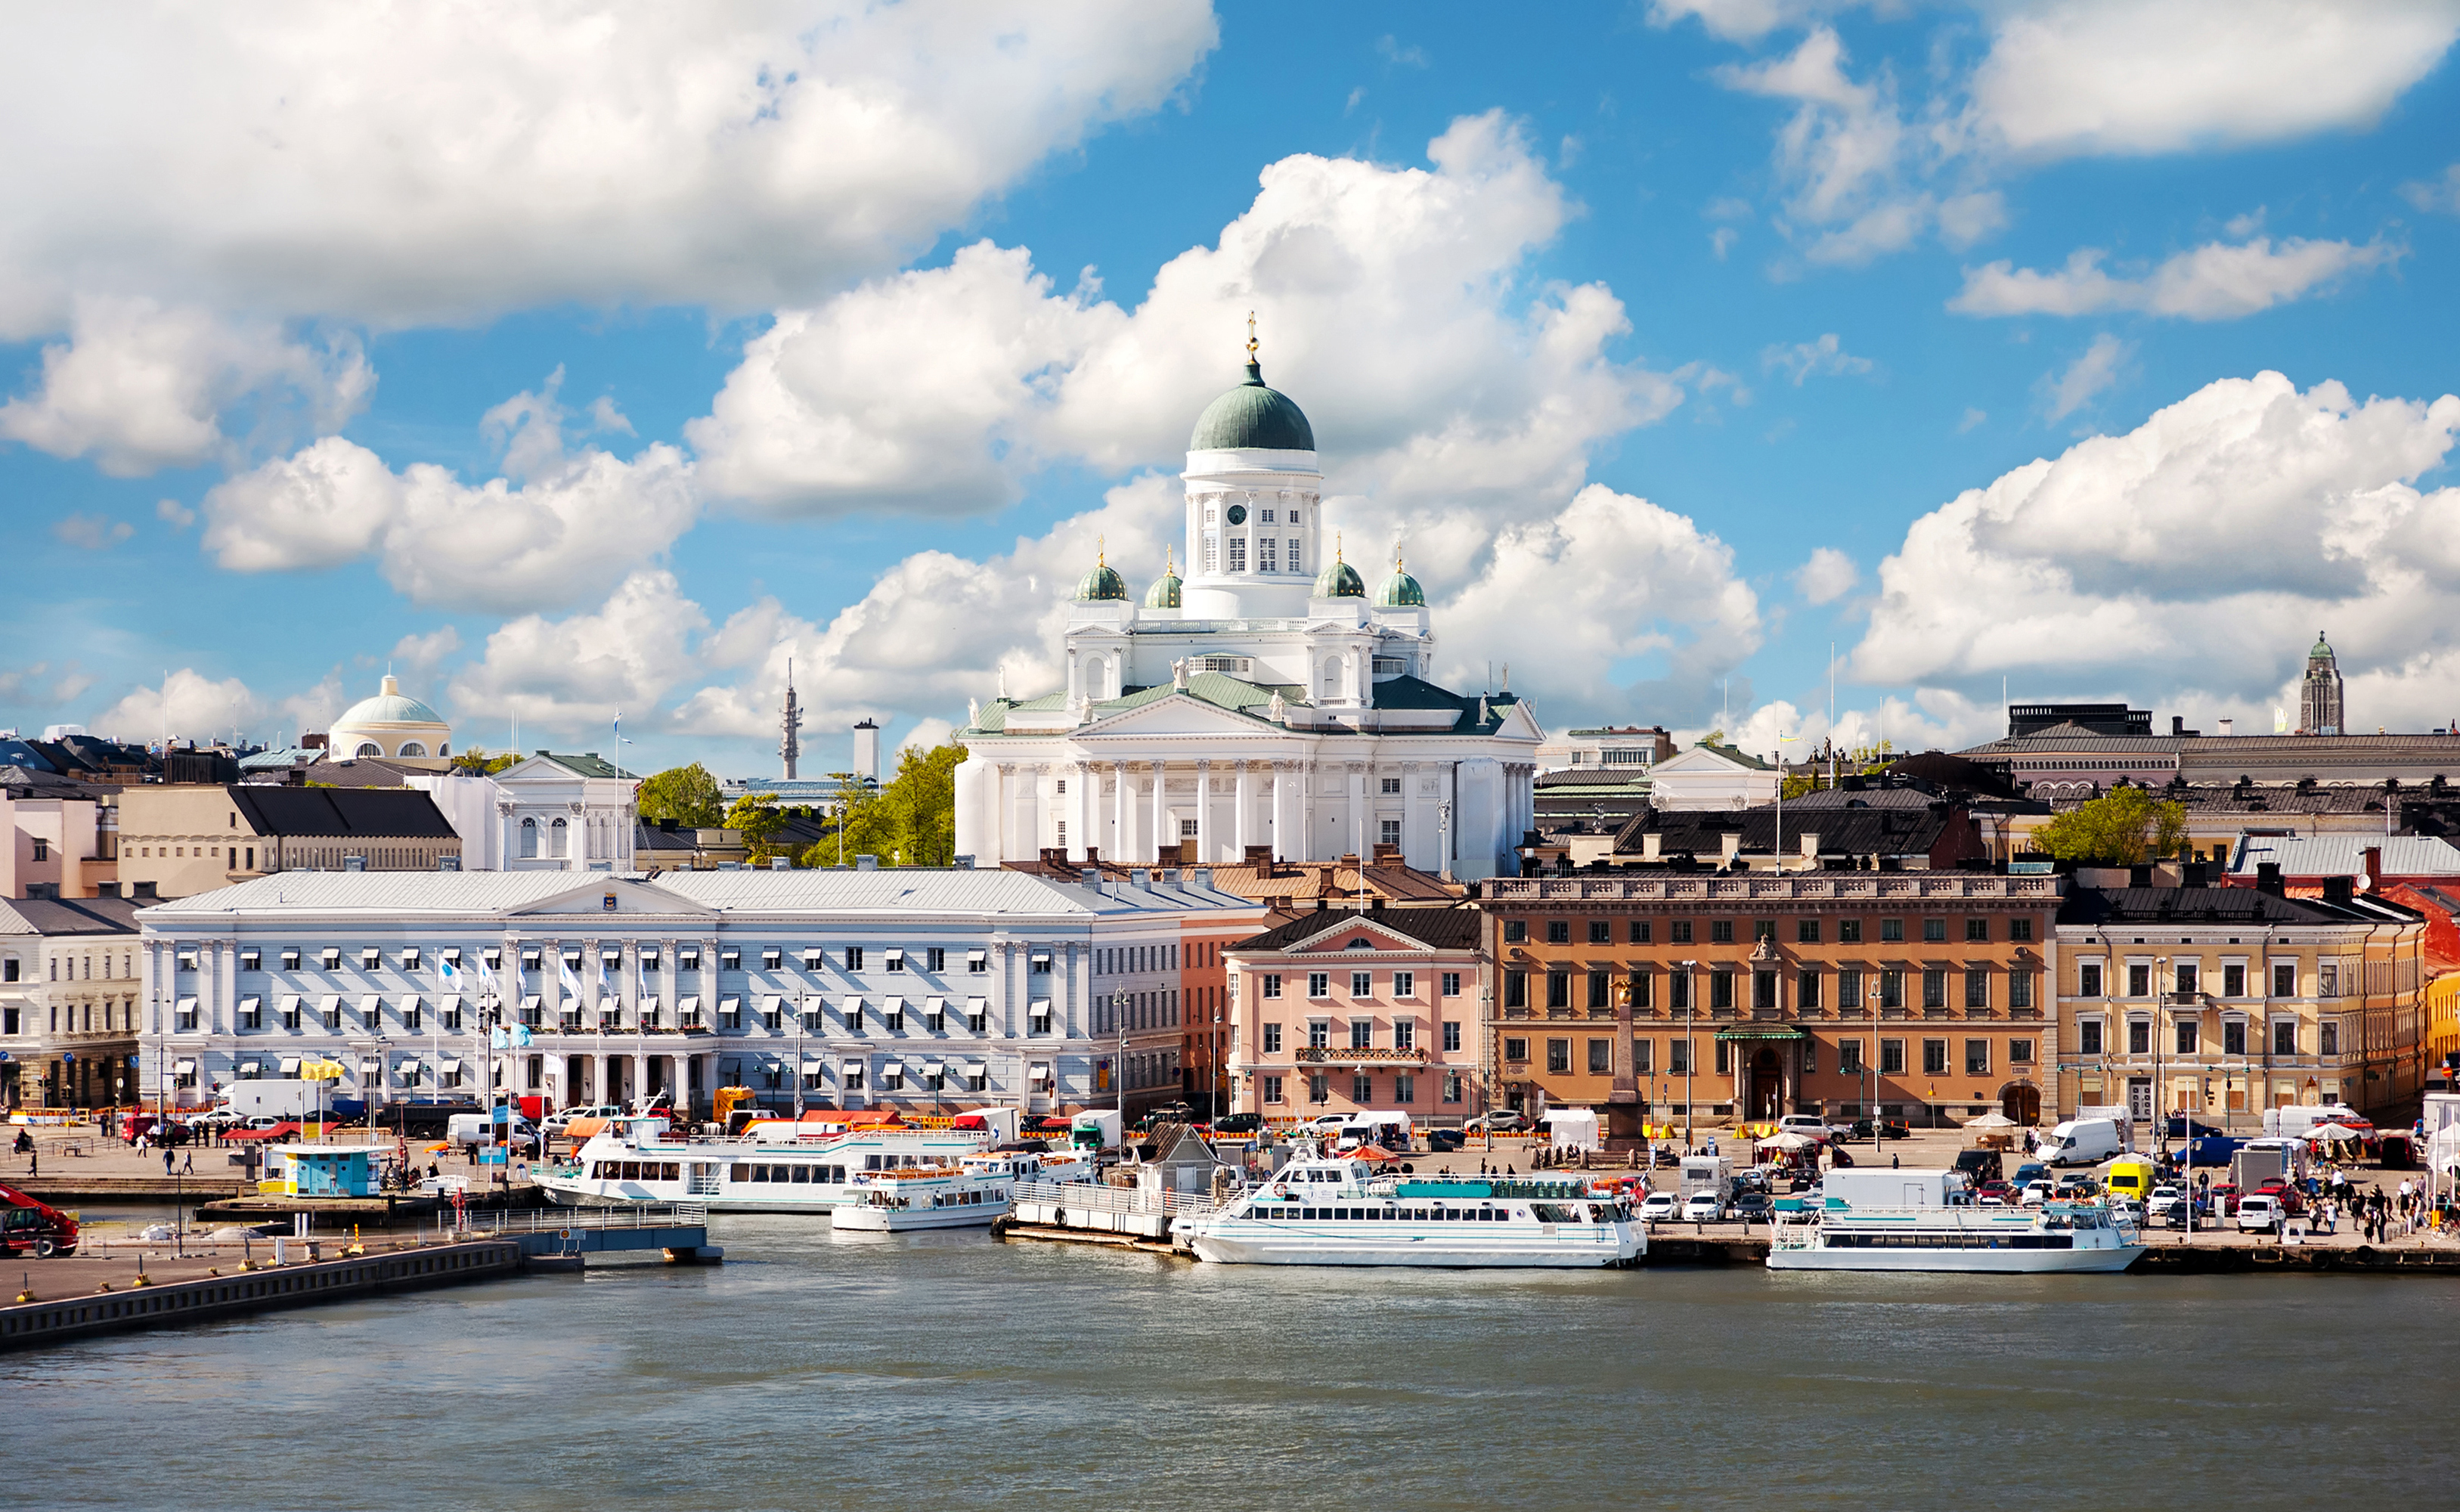 Helsinki's attractive and unique character comes from its proximity to the sea, as well as its location between the East and the West